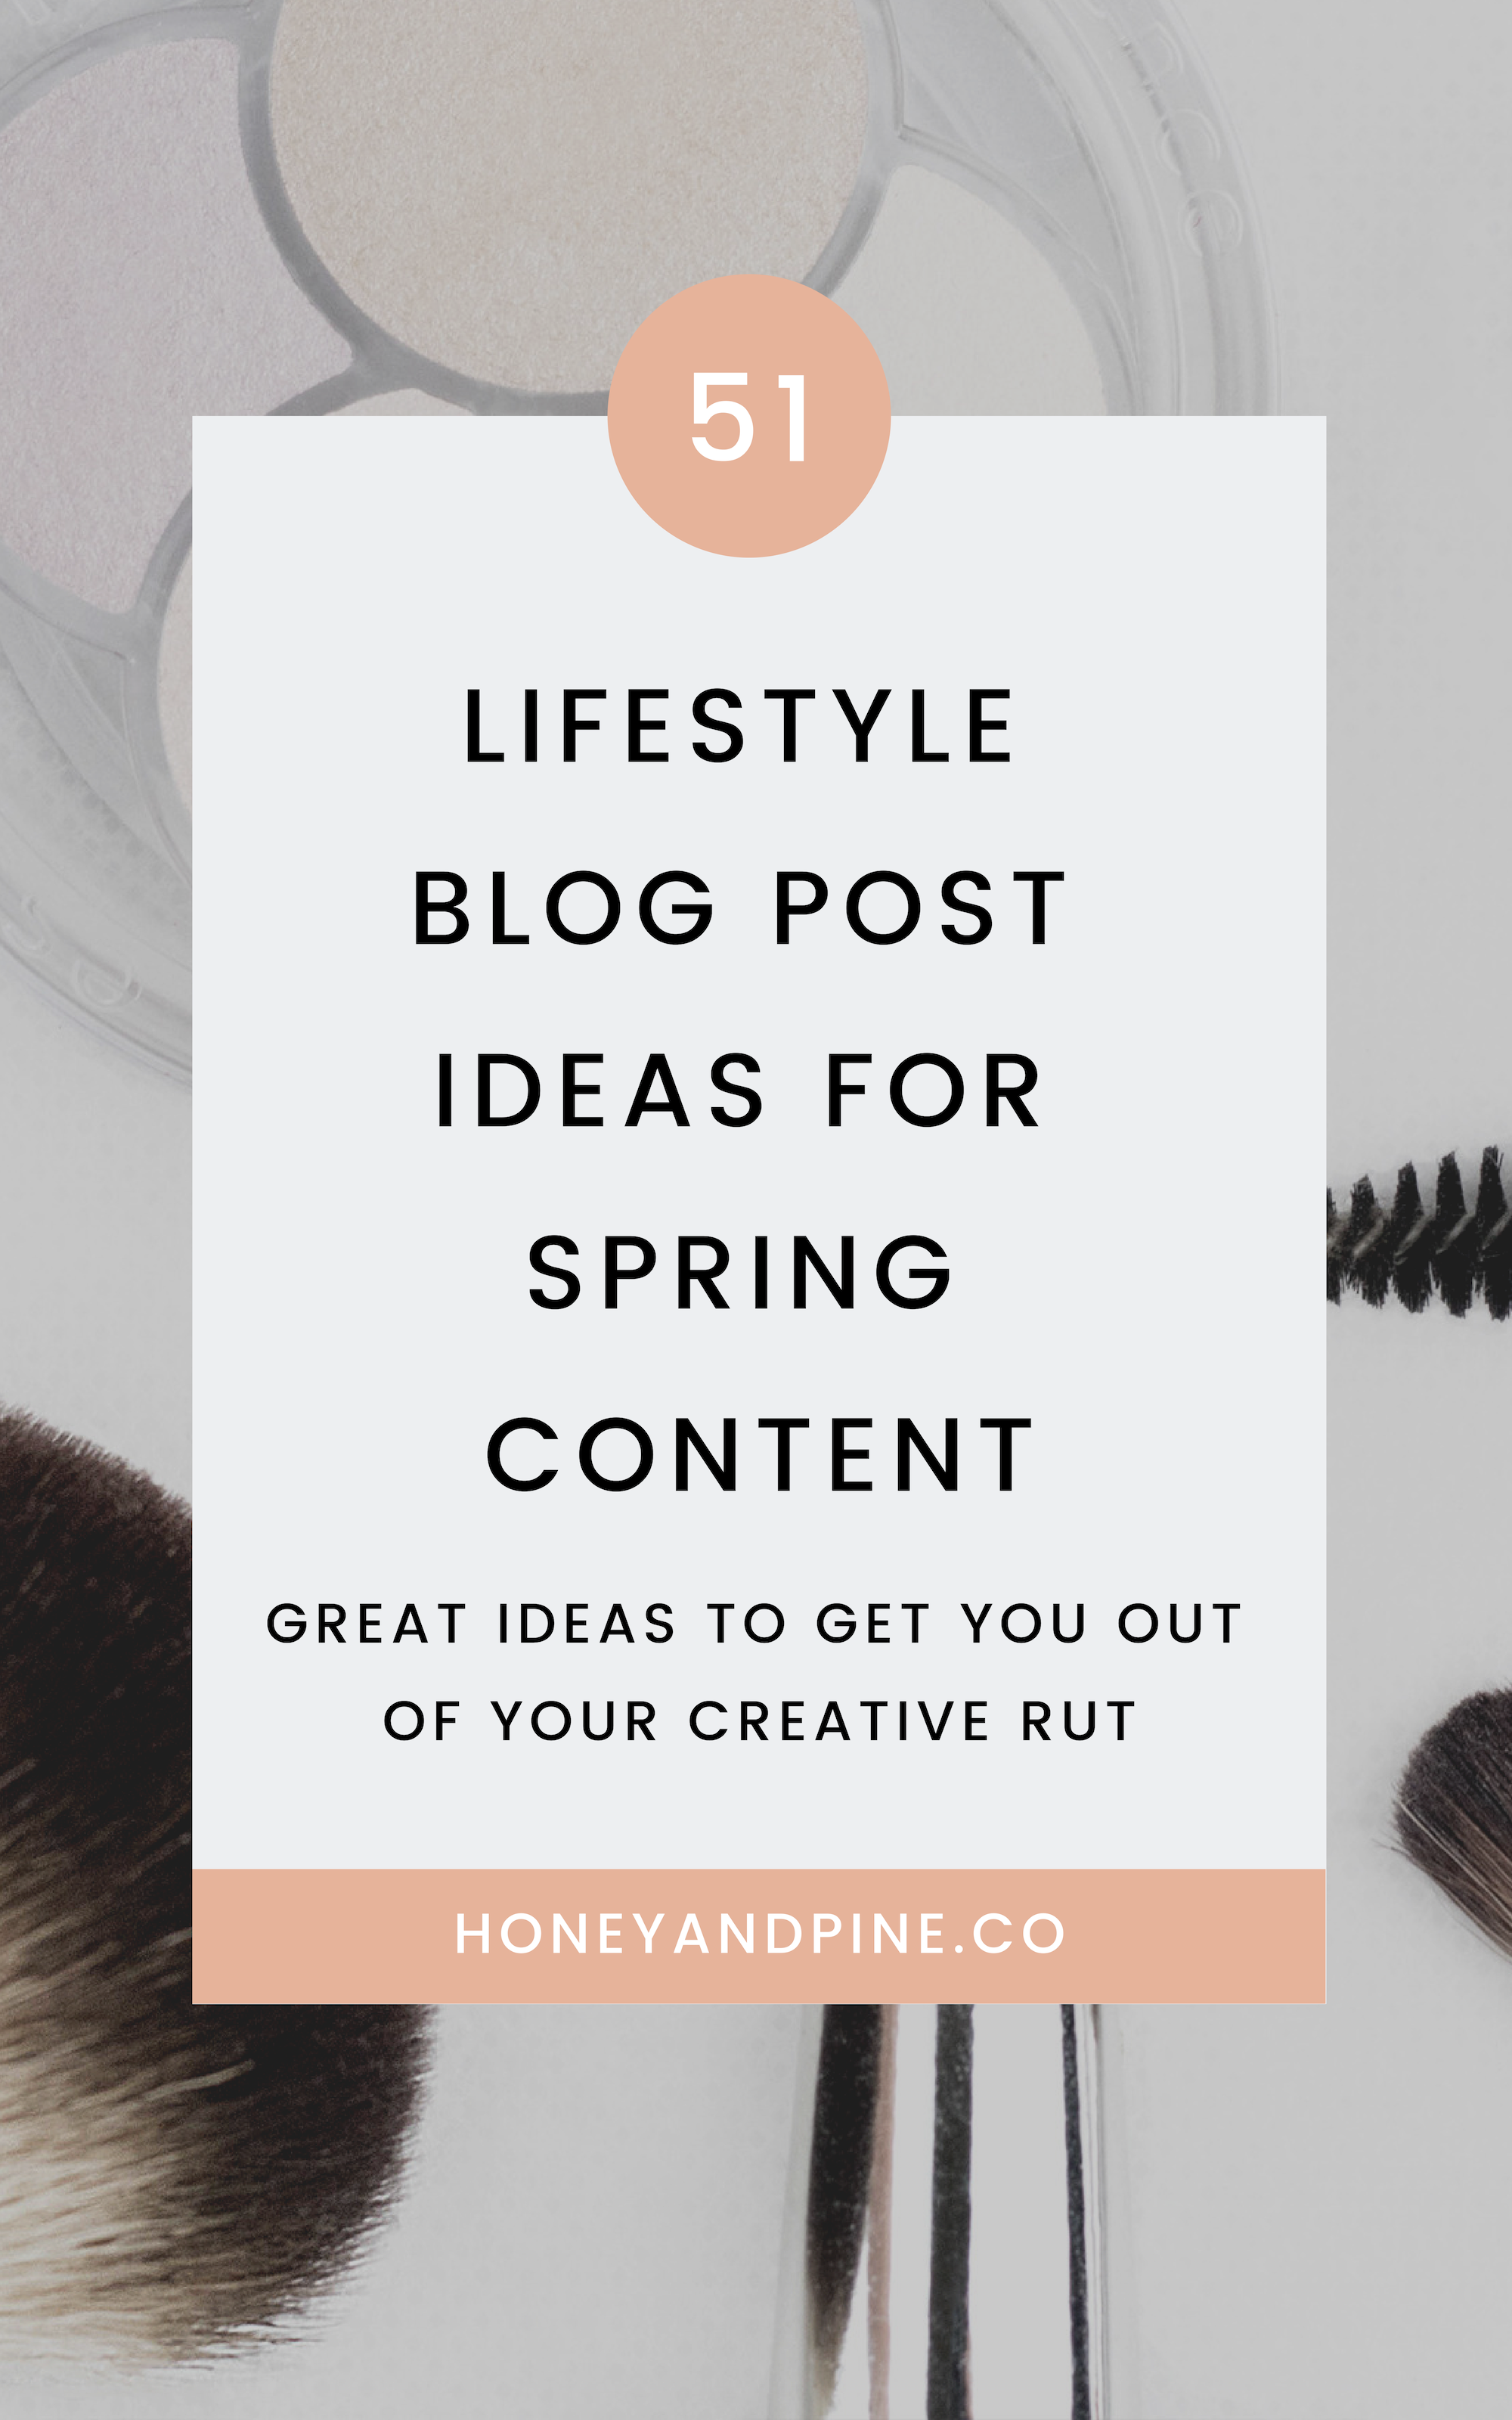 51 Lifestyle Blog Post Ideas For Spring Honey And Pine Co Lifestyle Blog Blog Tips Blogging Inspiration